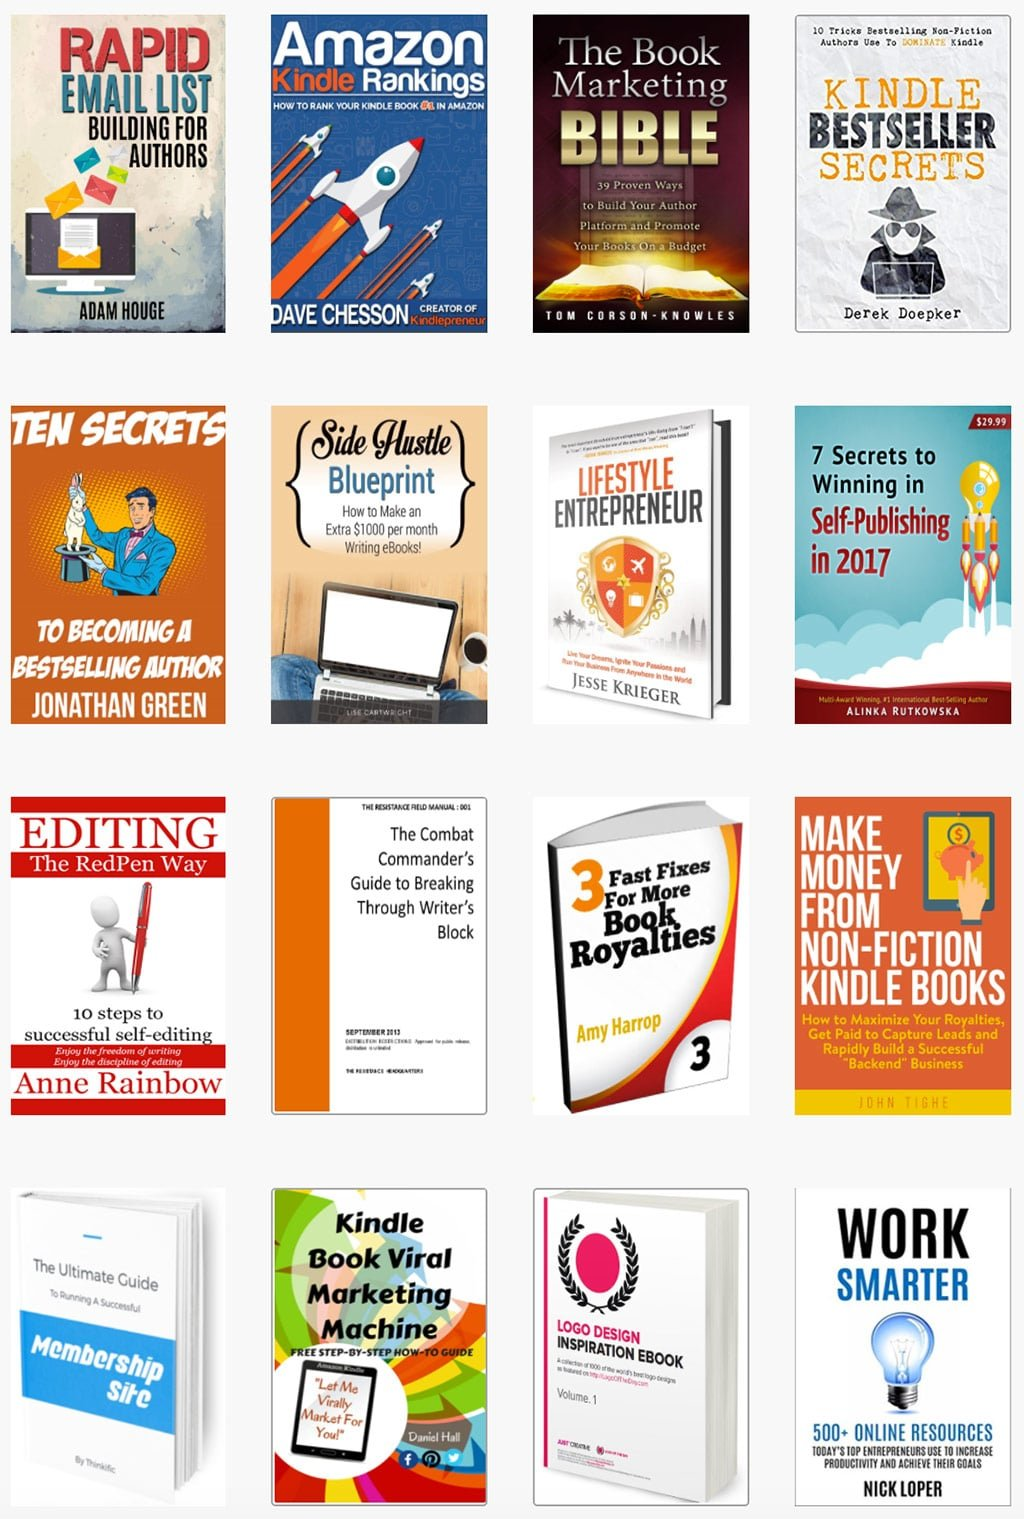 FREE eBook Library to Skyrocket your Career! [Ends Aug 19]